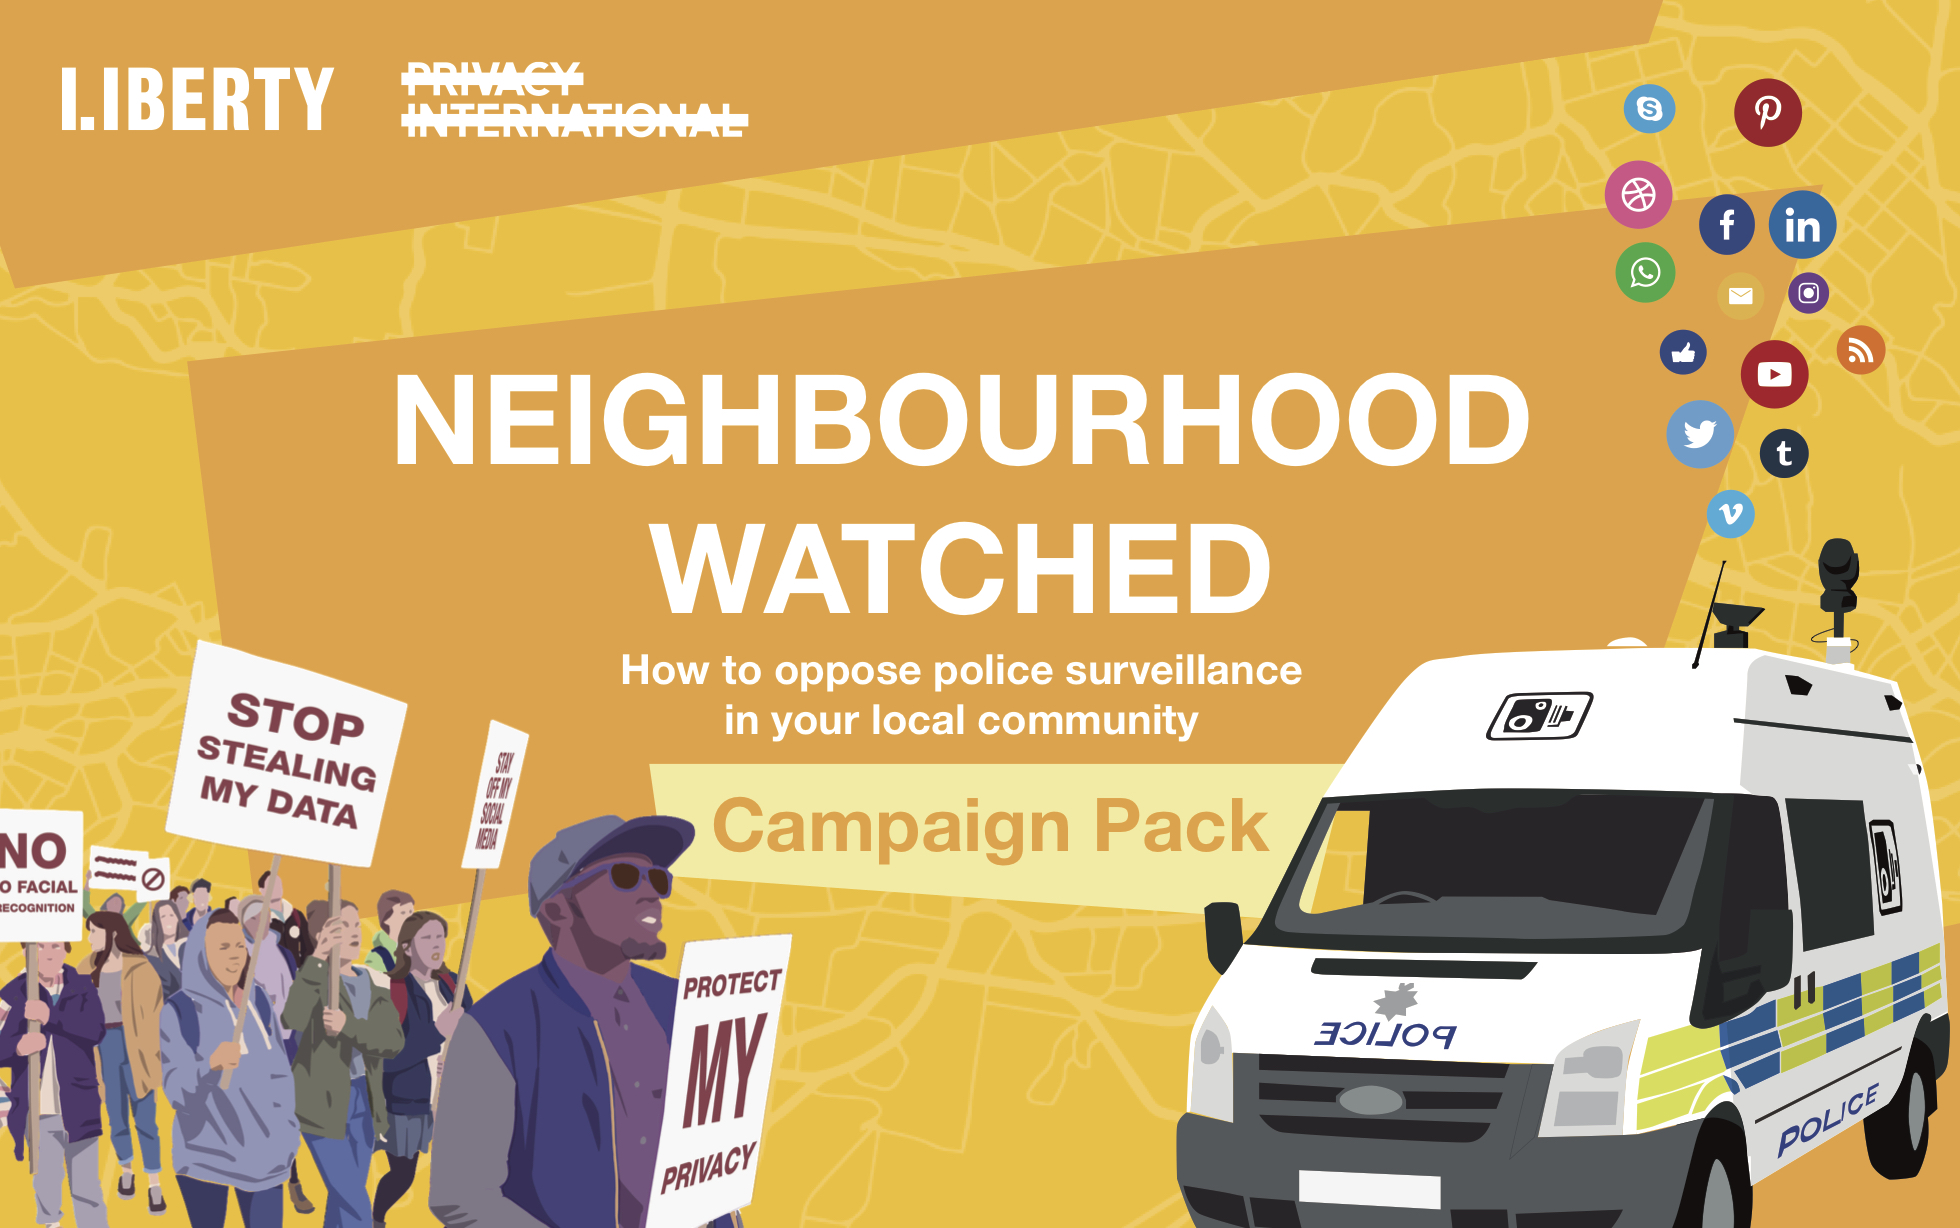 NeighbourhoodWatched Campaign